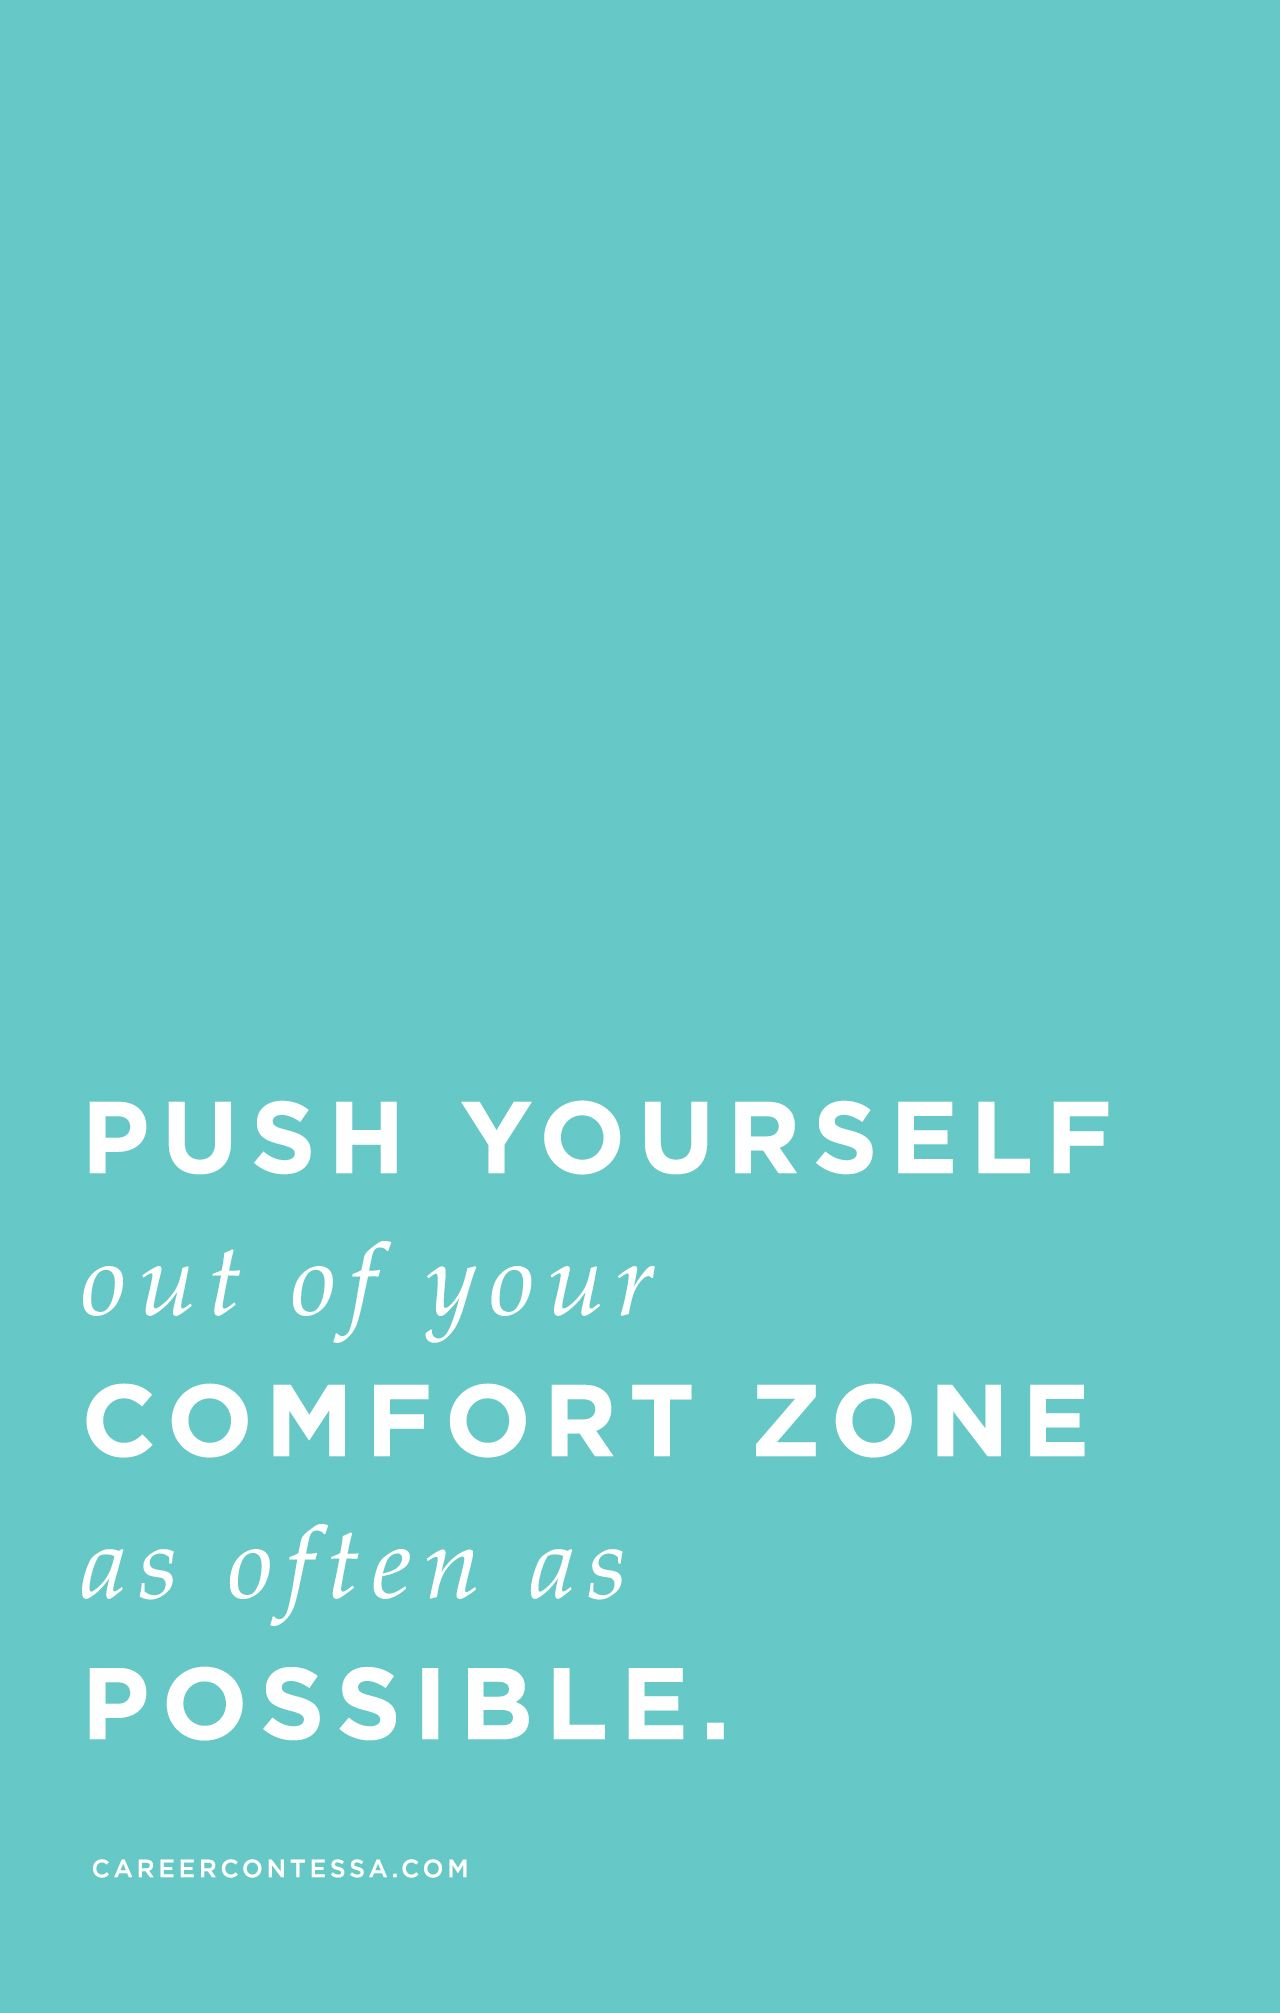 Push Yourself Out Of That Comfort Zone You Just Might Surprise